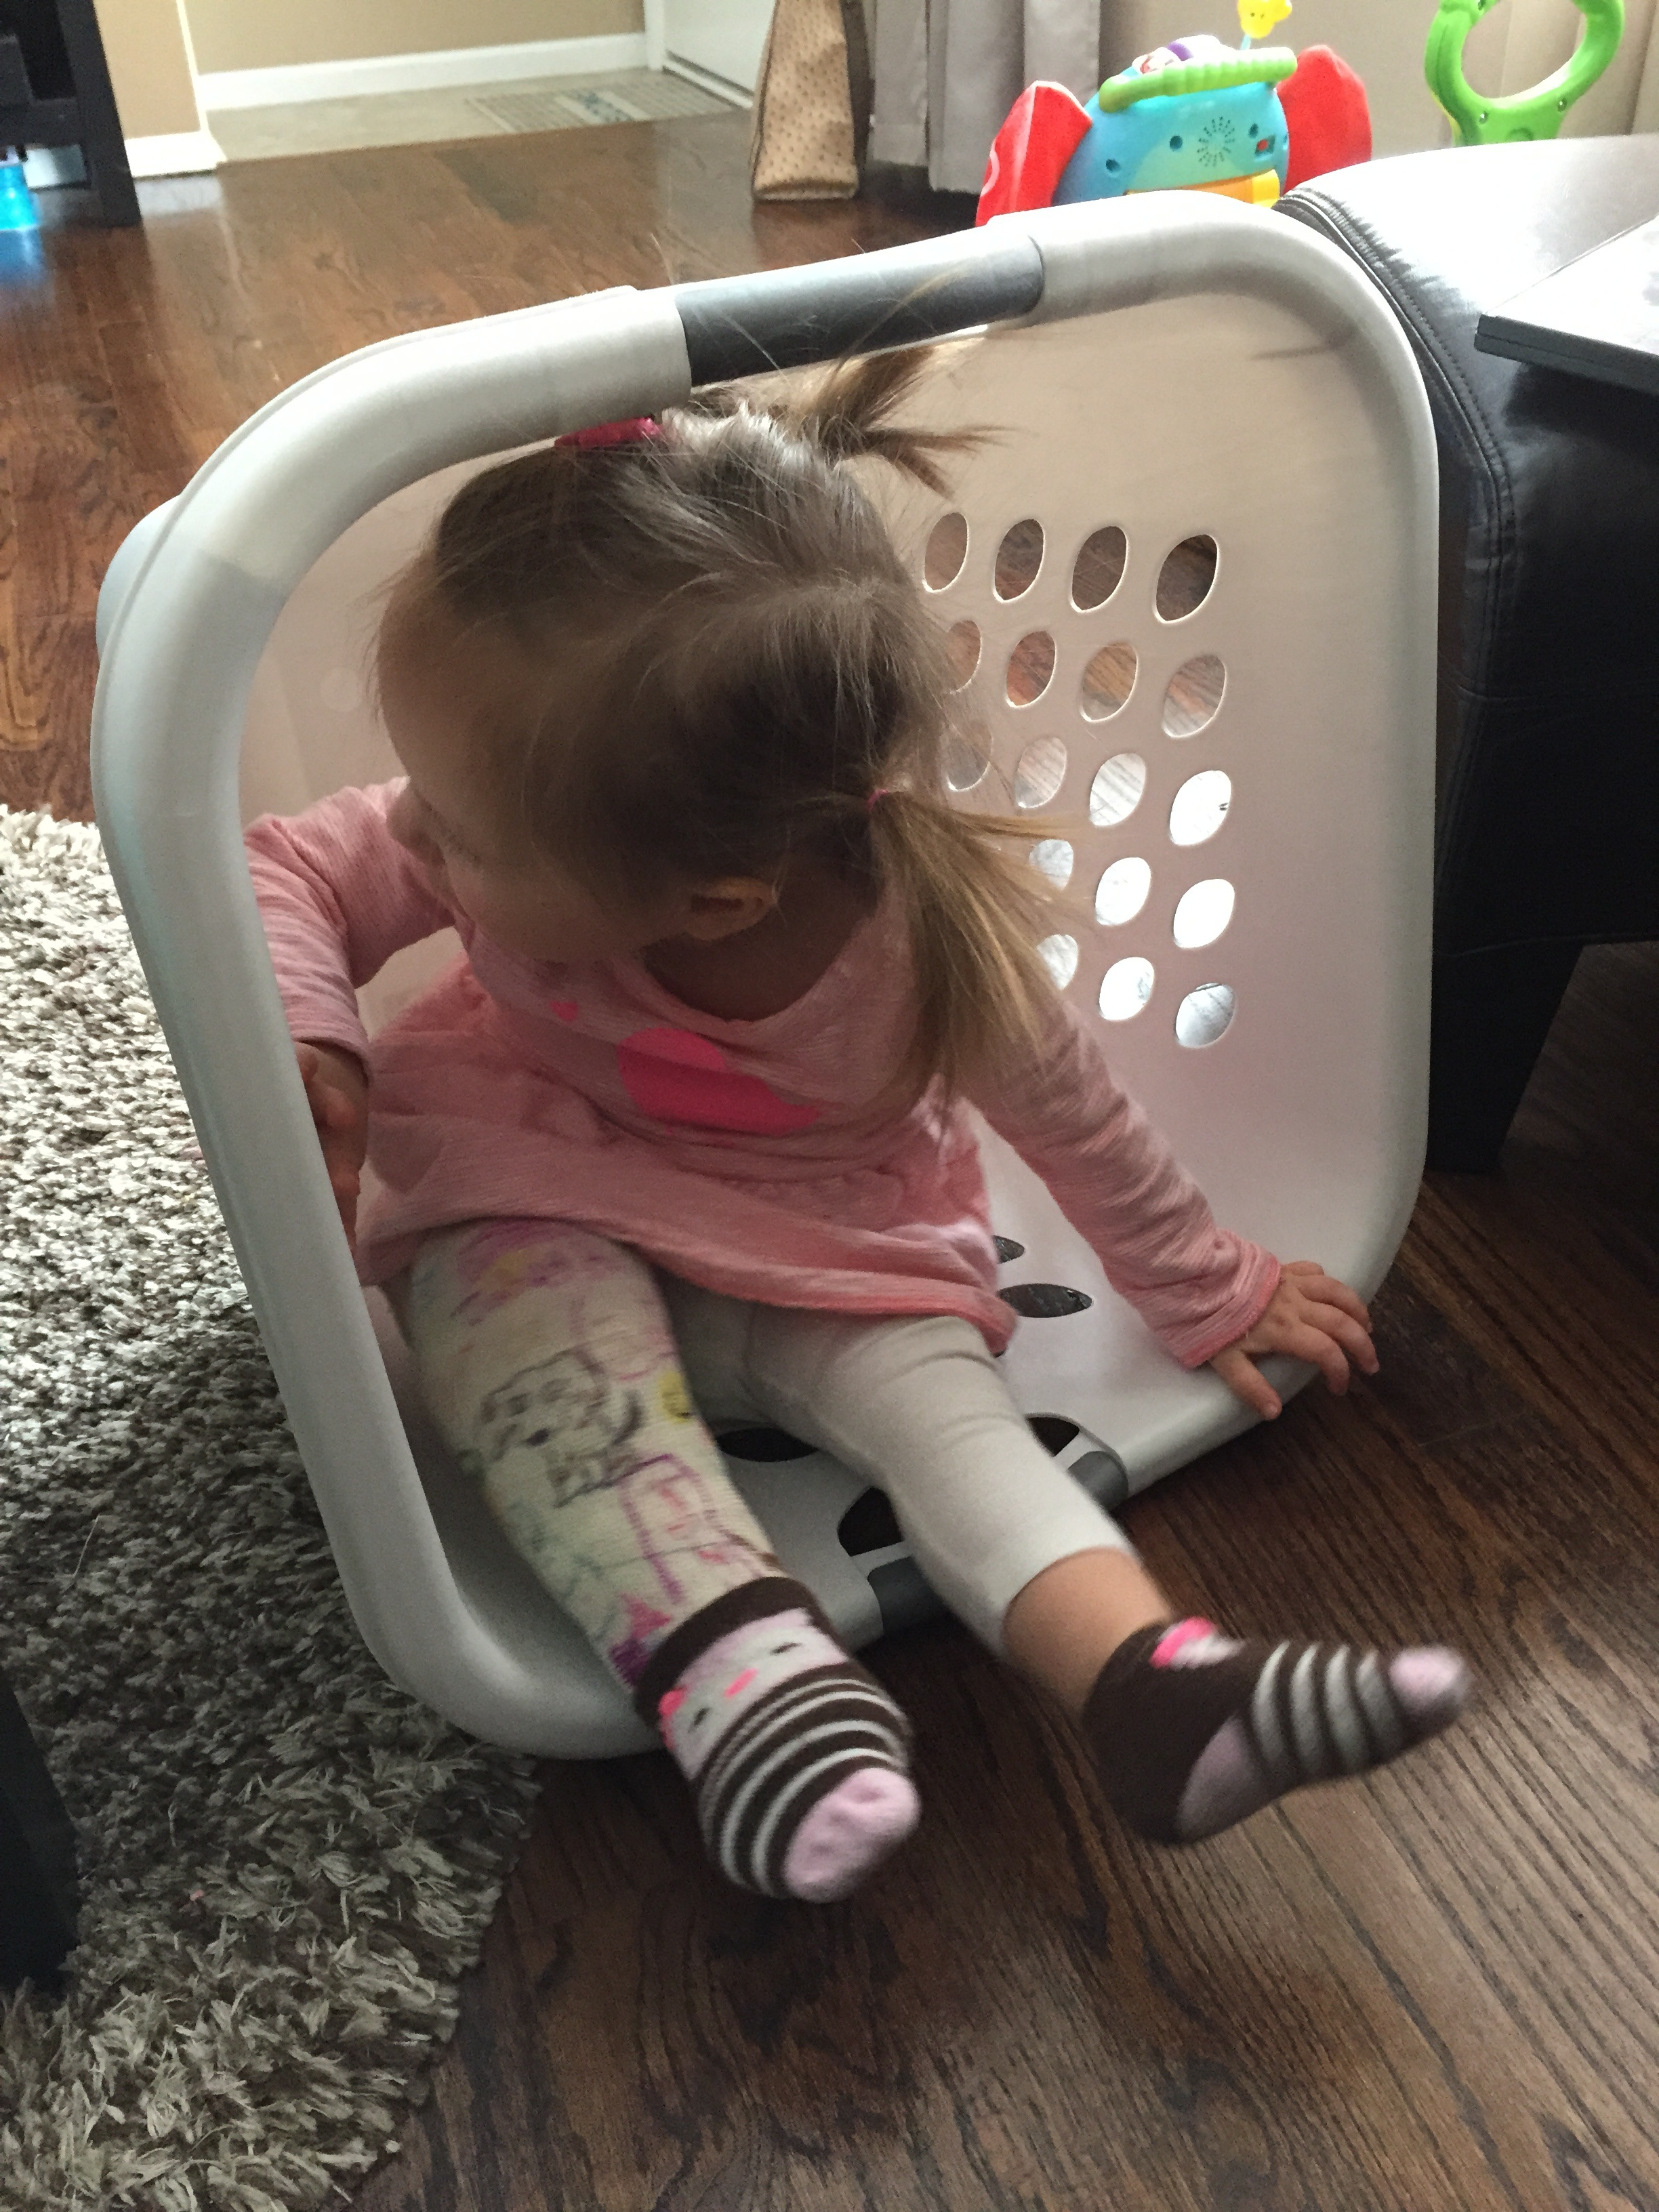 Toddler in laundry basket